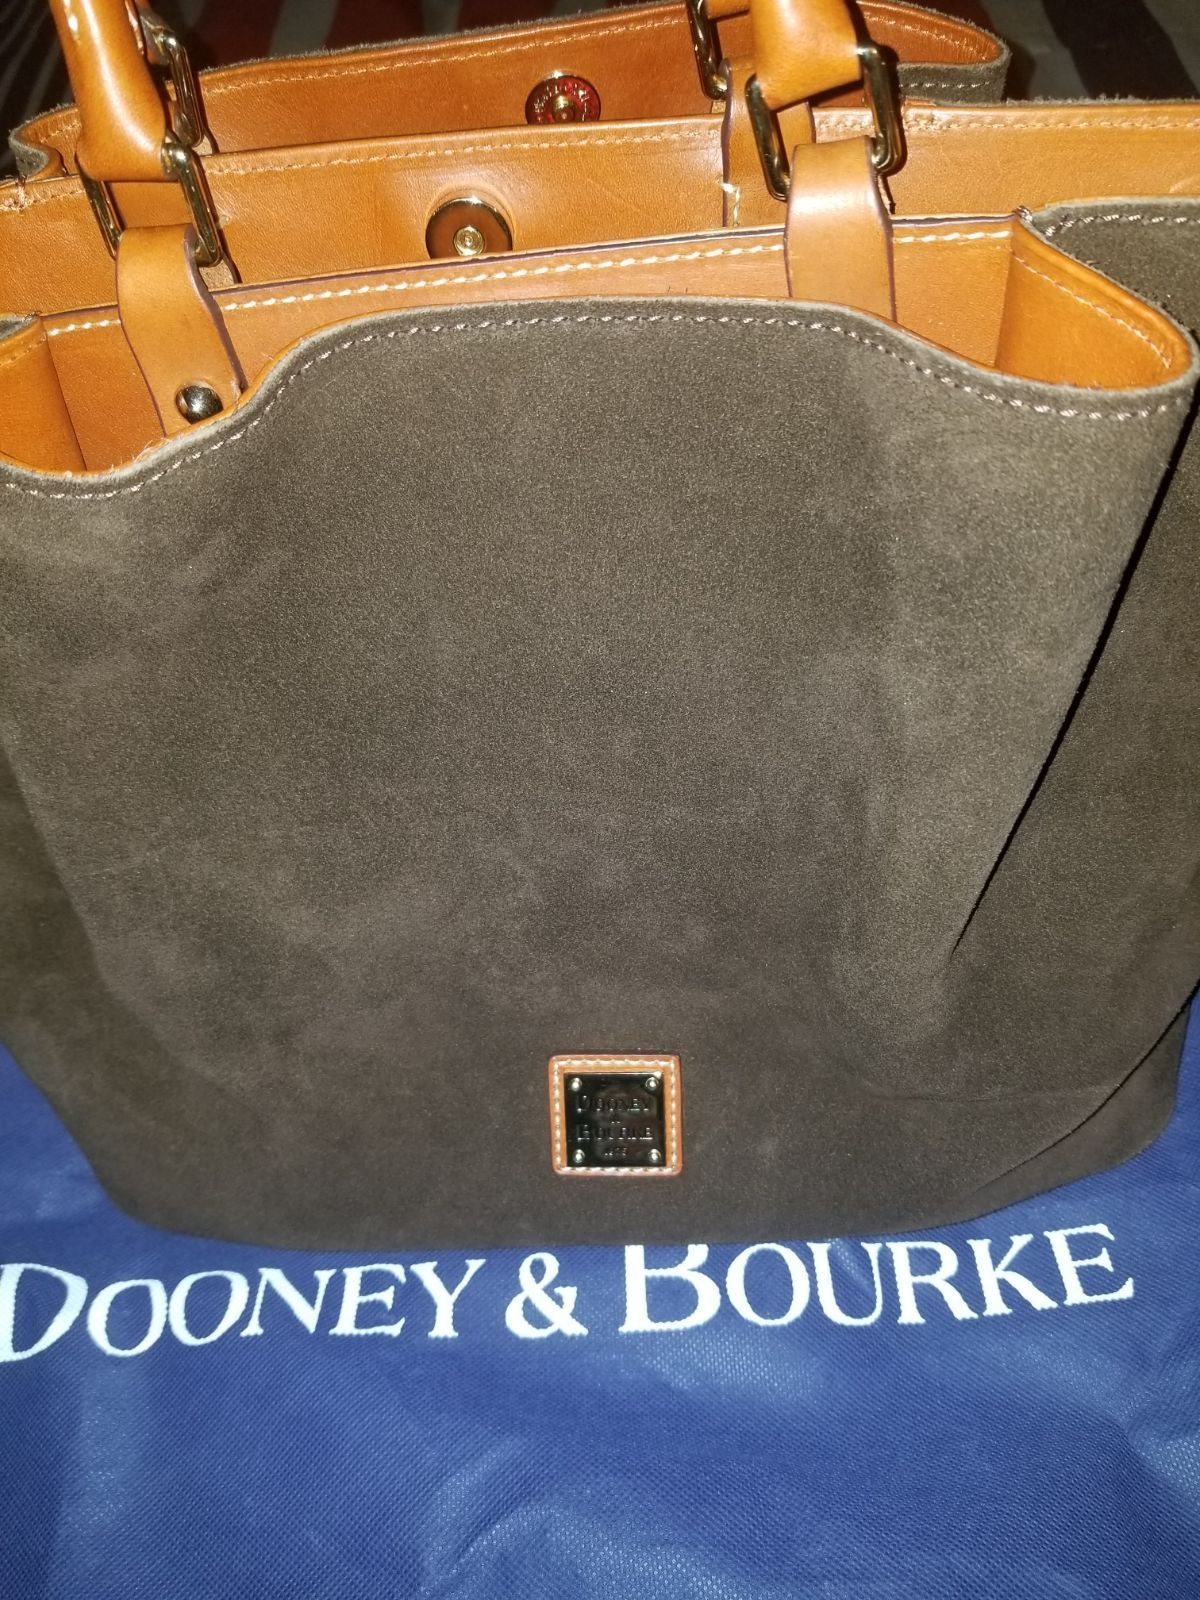 Suede dooney bourke large barlow comes with dust bag and